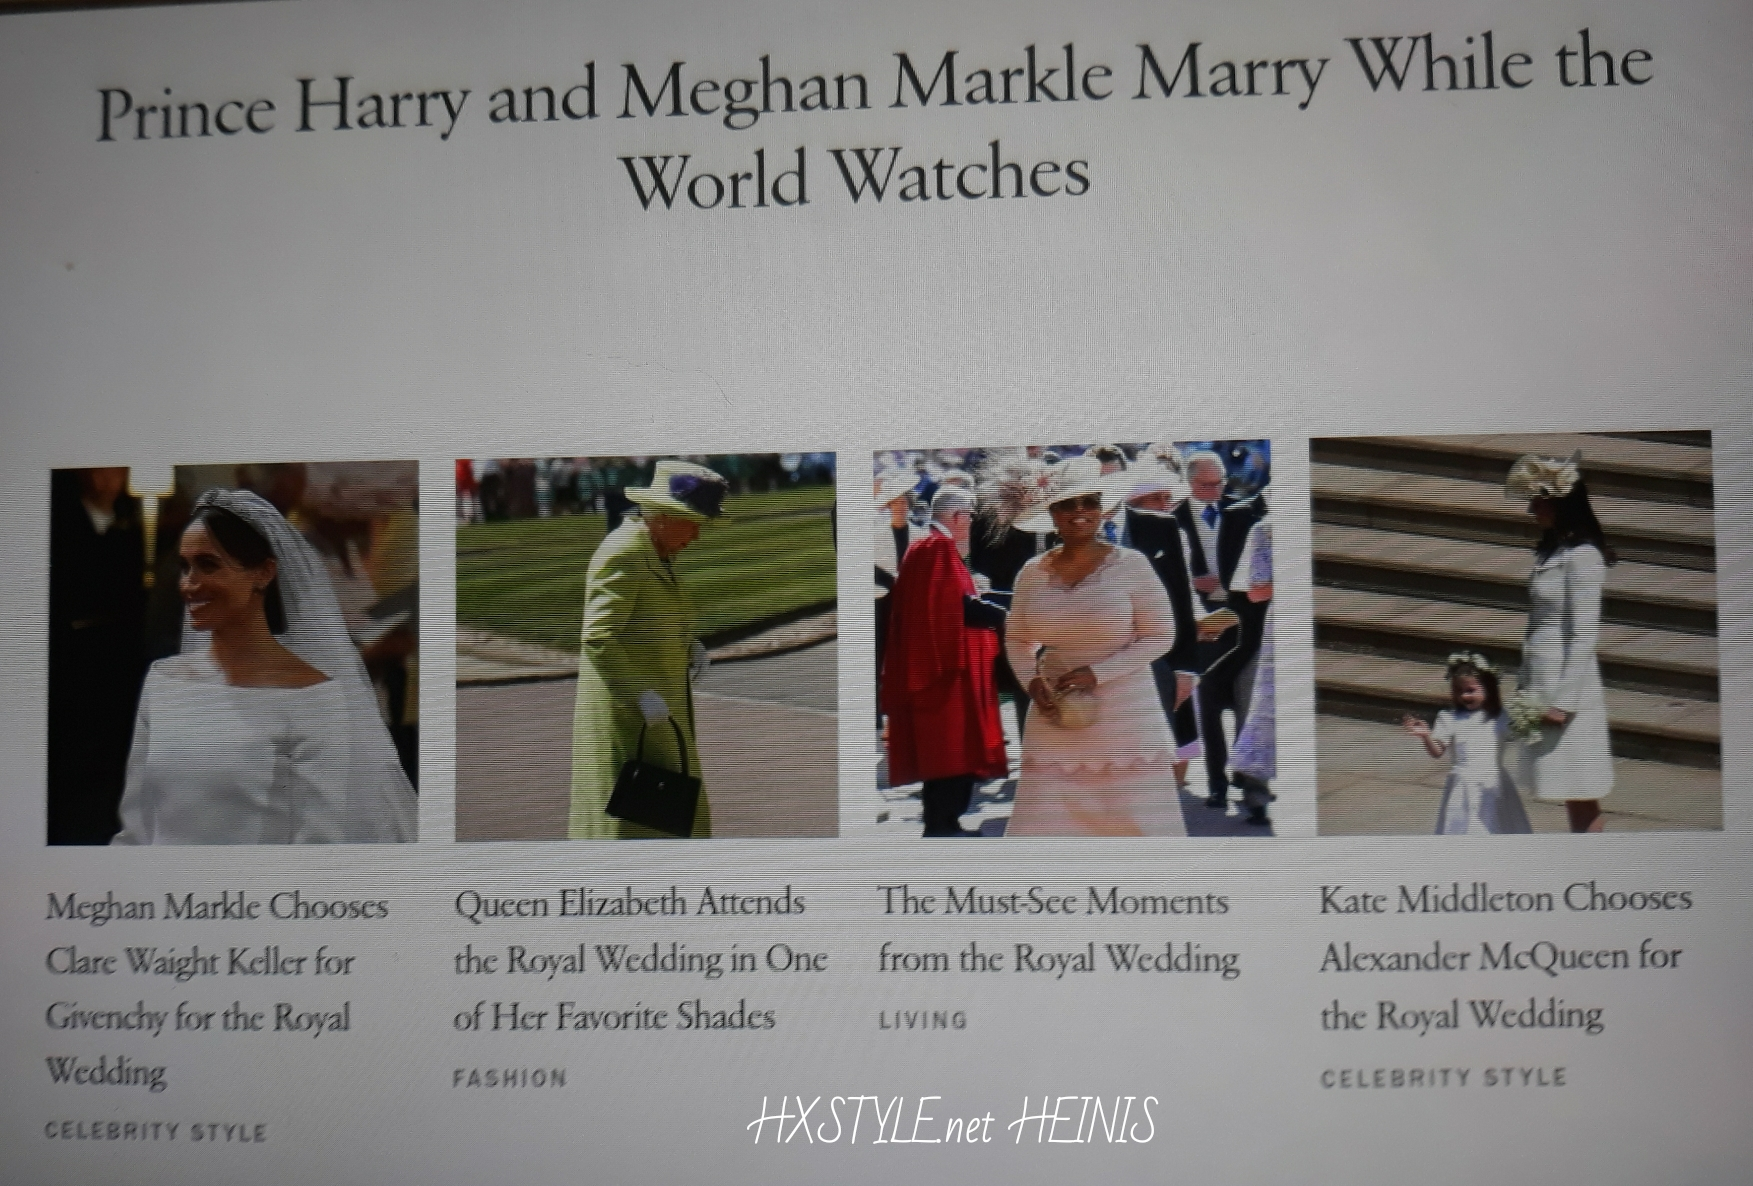 VOGUE NEWS&TRENDS. ENGLAND ROYAL FAMILY. PRINCE HARRY &Megan Markle 19.5.2018 ROYAL WEDDING&FASHION STYLES, Accessories, Invited Quests 600, PHOTOS…Windsor Castle. 22.5. Favourite. HXSTYLE.net HEINIS